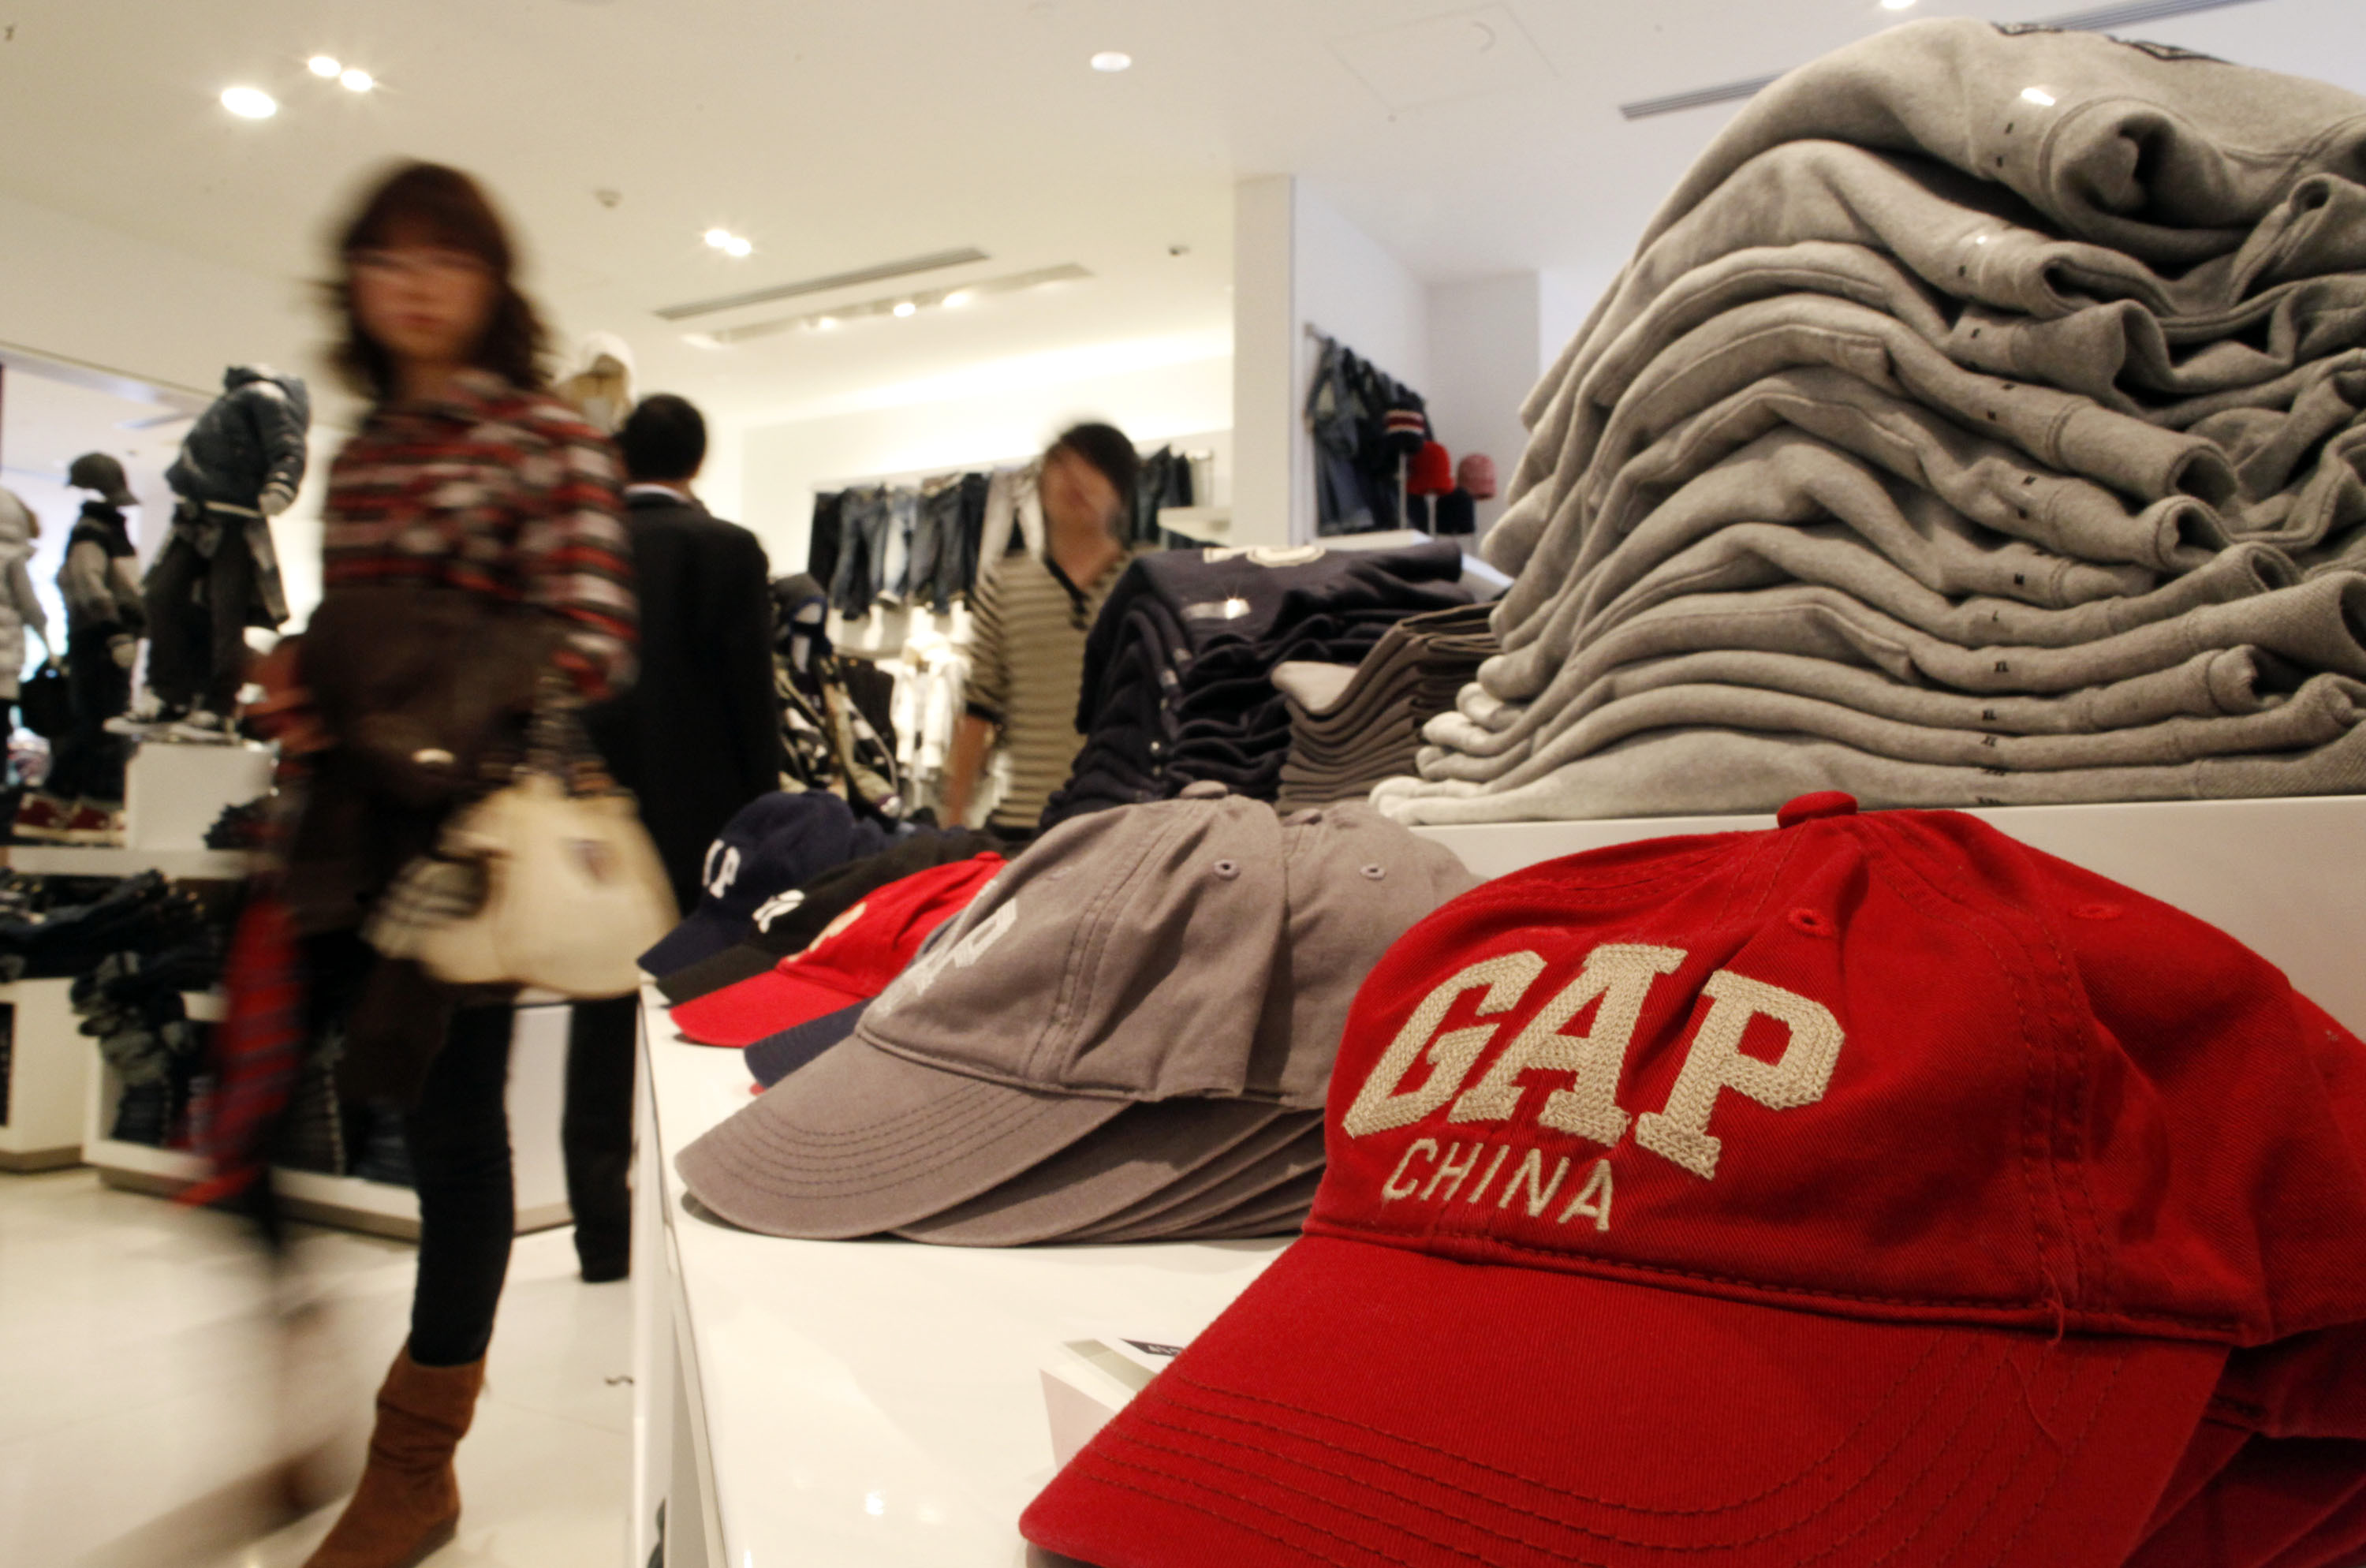 Gap apologized for not adhering to the 'One China' policy